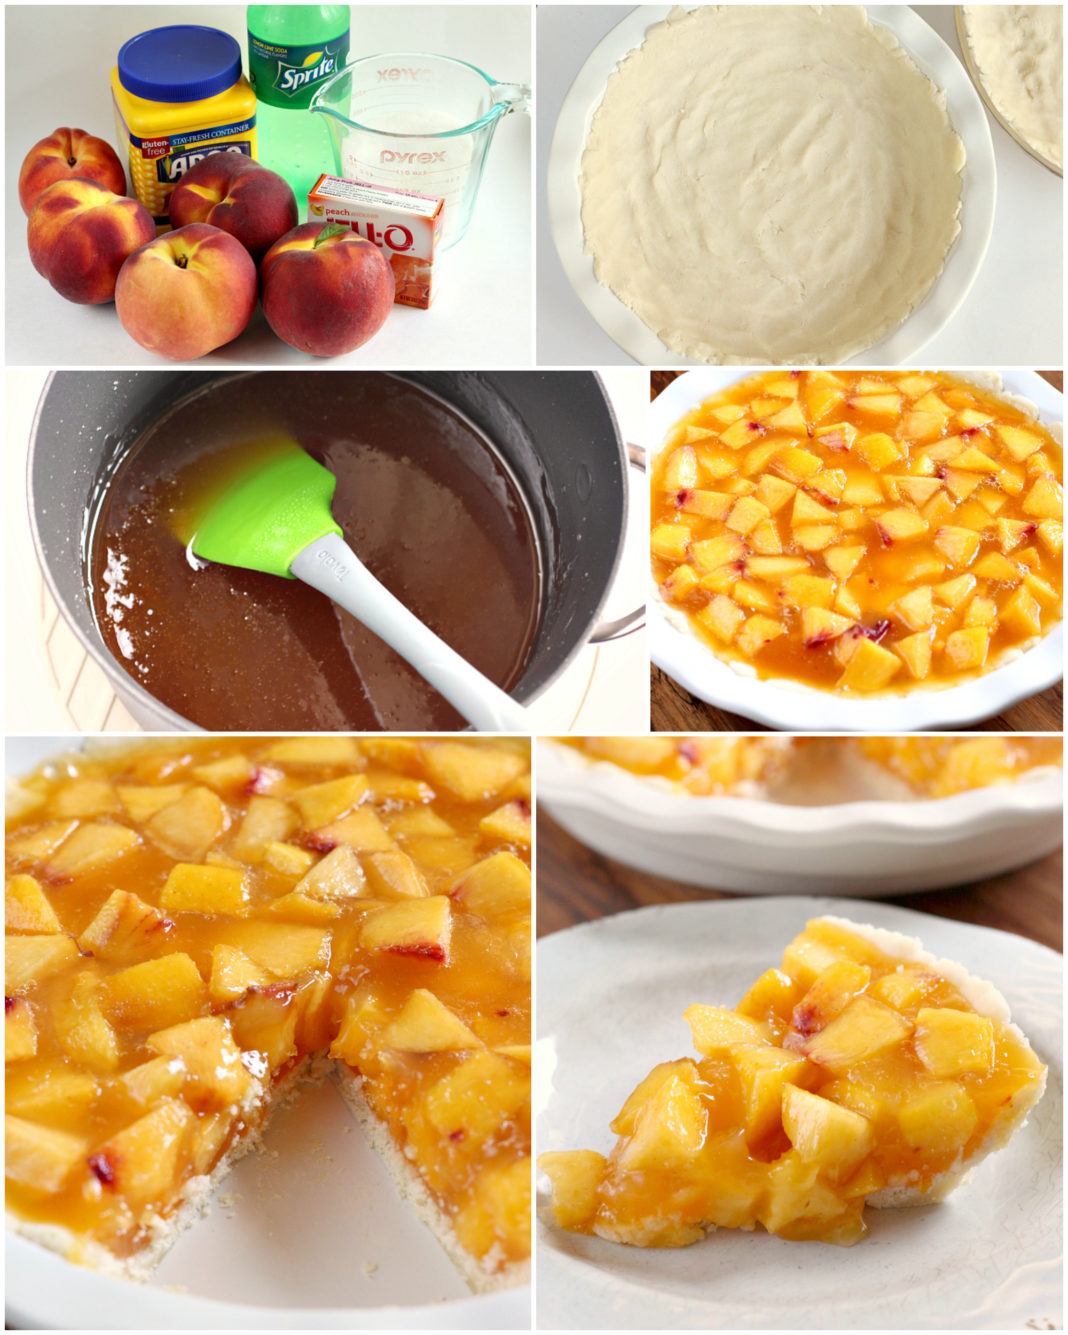 Step by step photos and instructions on how to make Easy Peach Pie. Lots of fresh peaches and a few other simple ingredients, including Sprite!